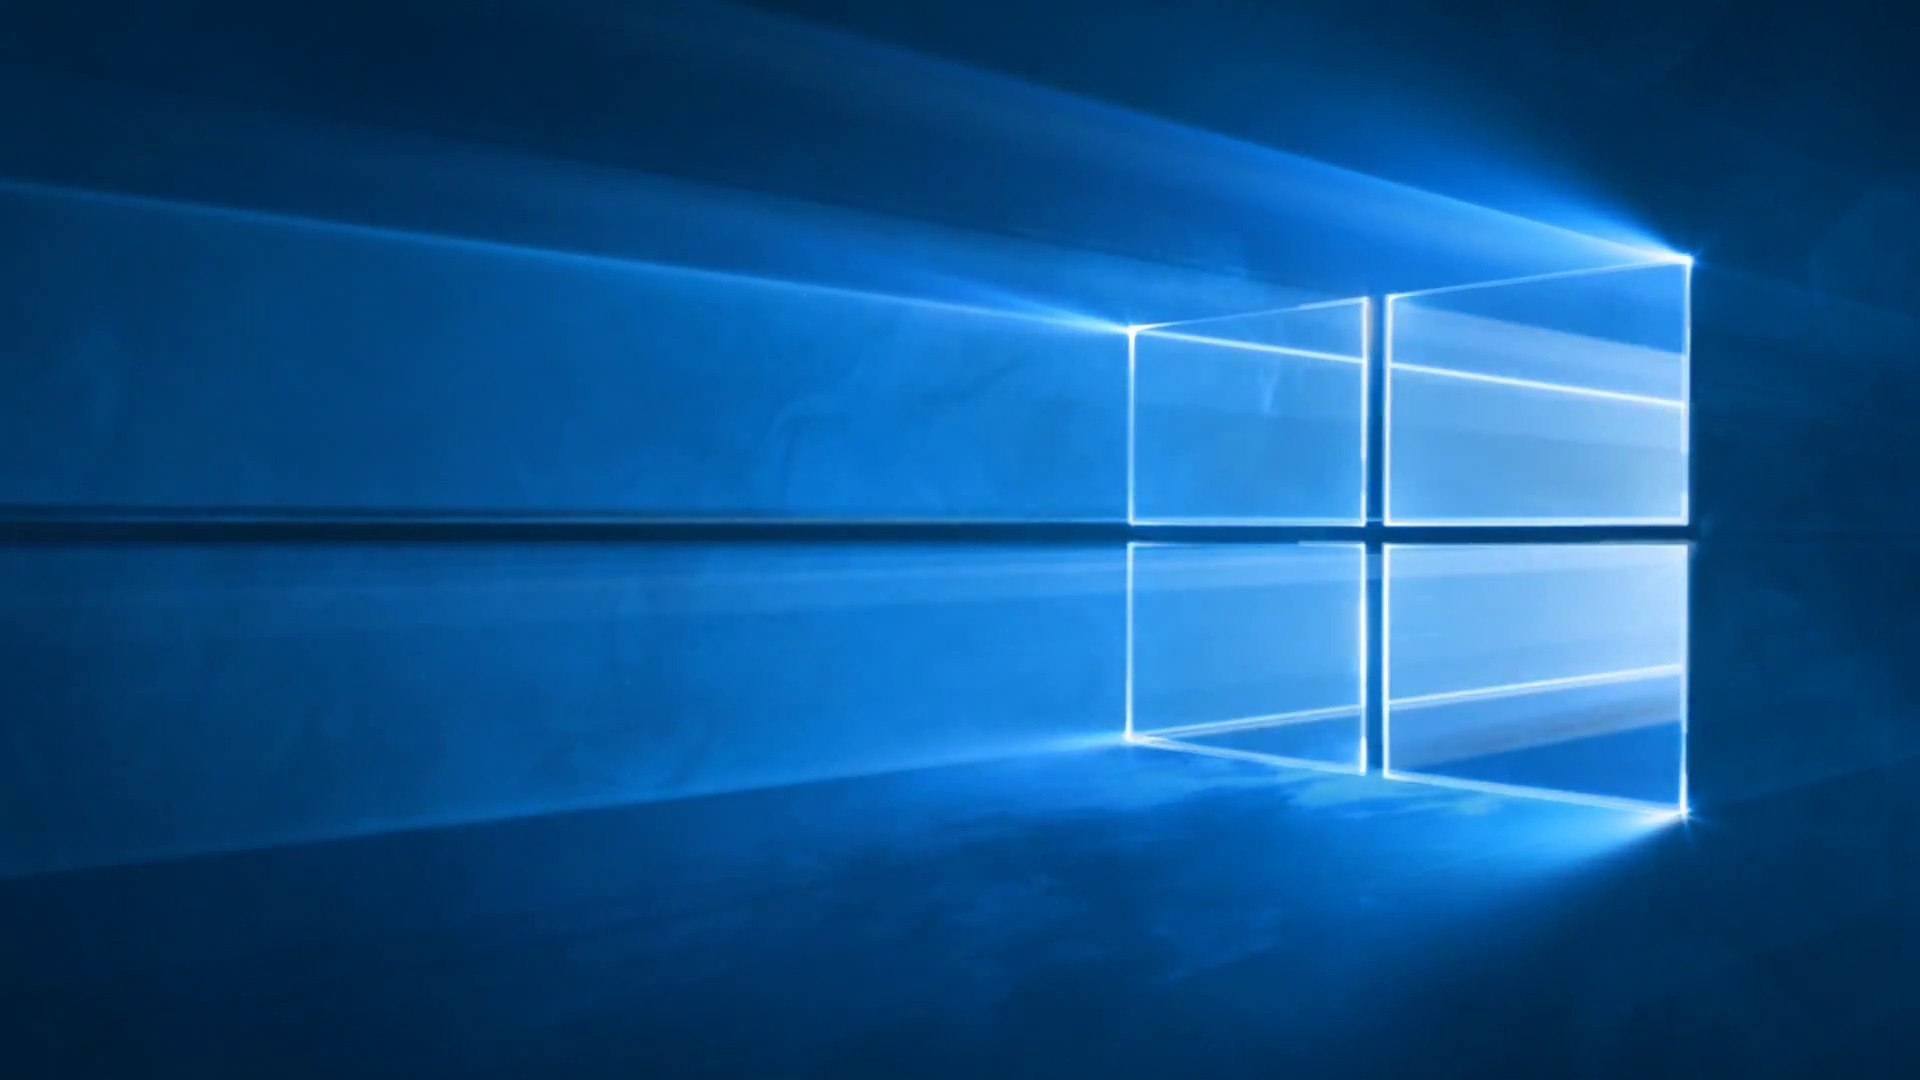 Of course no list of top Windows 10 wallpapers will be complete 1920x1080